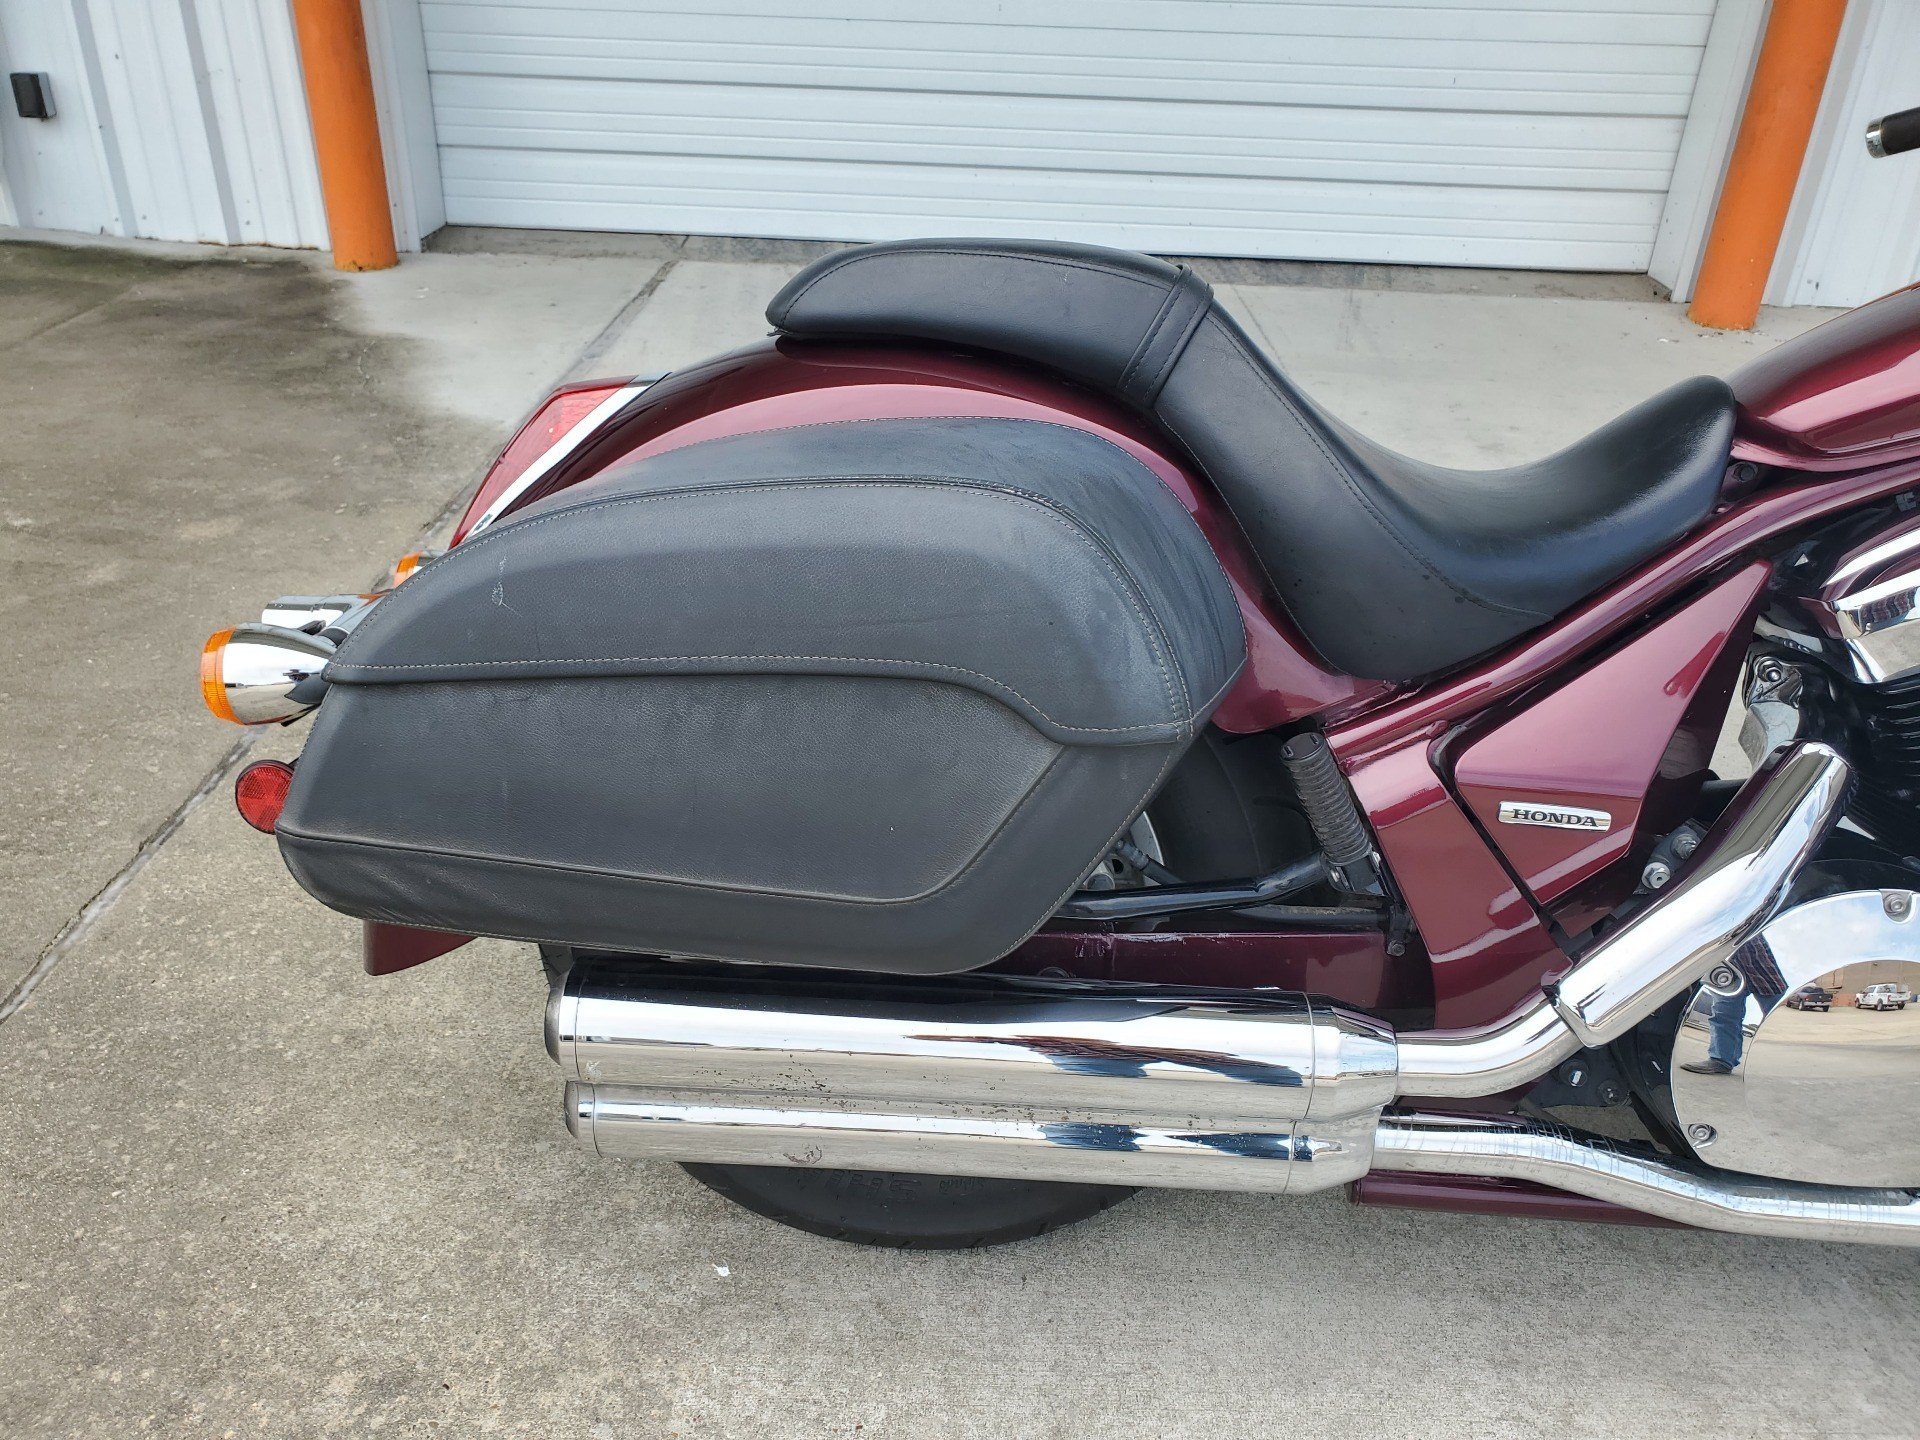 2012 Honda Interstate in Monroe, Louisiana - Photo 5